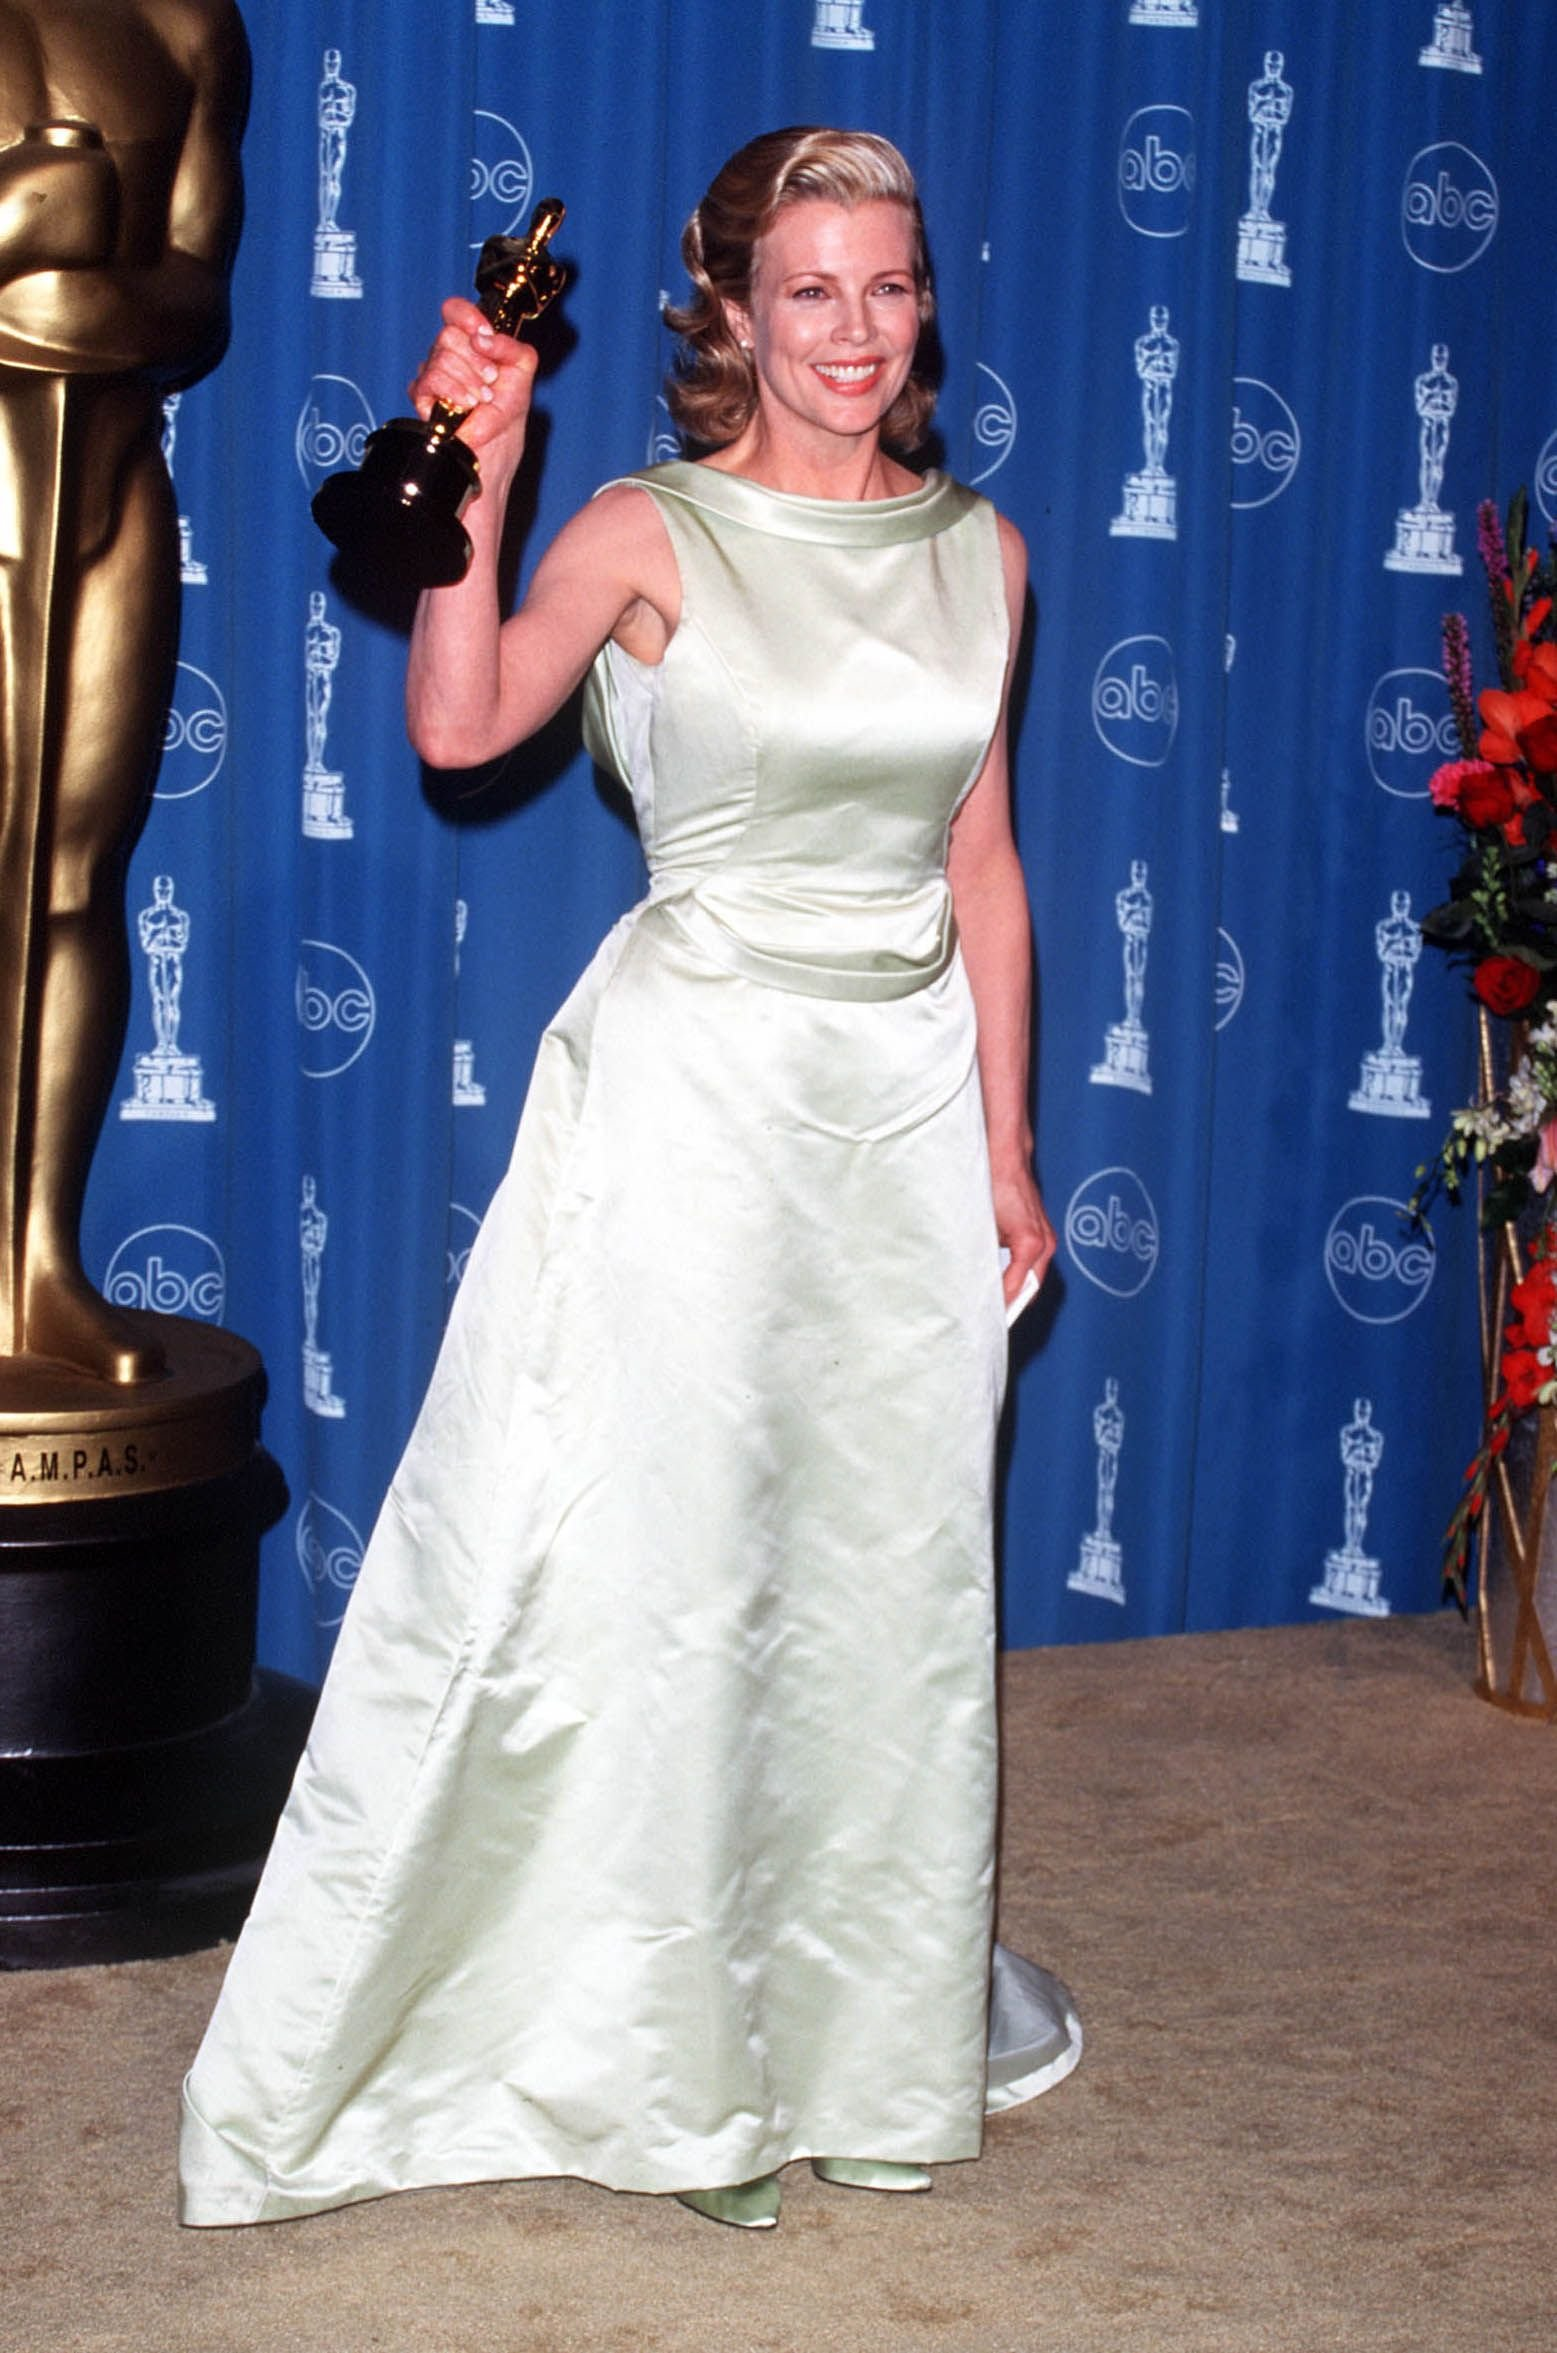 Bond Girl Kim Basinger with her Oscar for Best Supporting Actress at the 70th Annual Academy Awards | Source: Getty Images